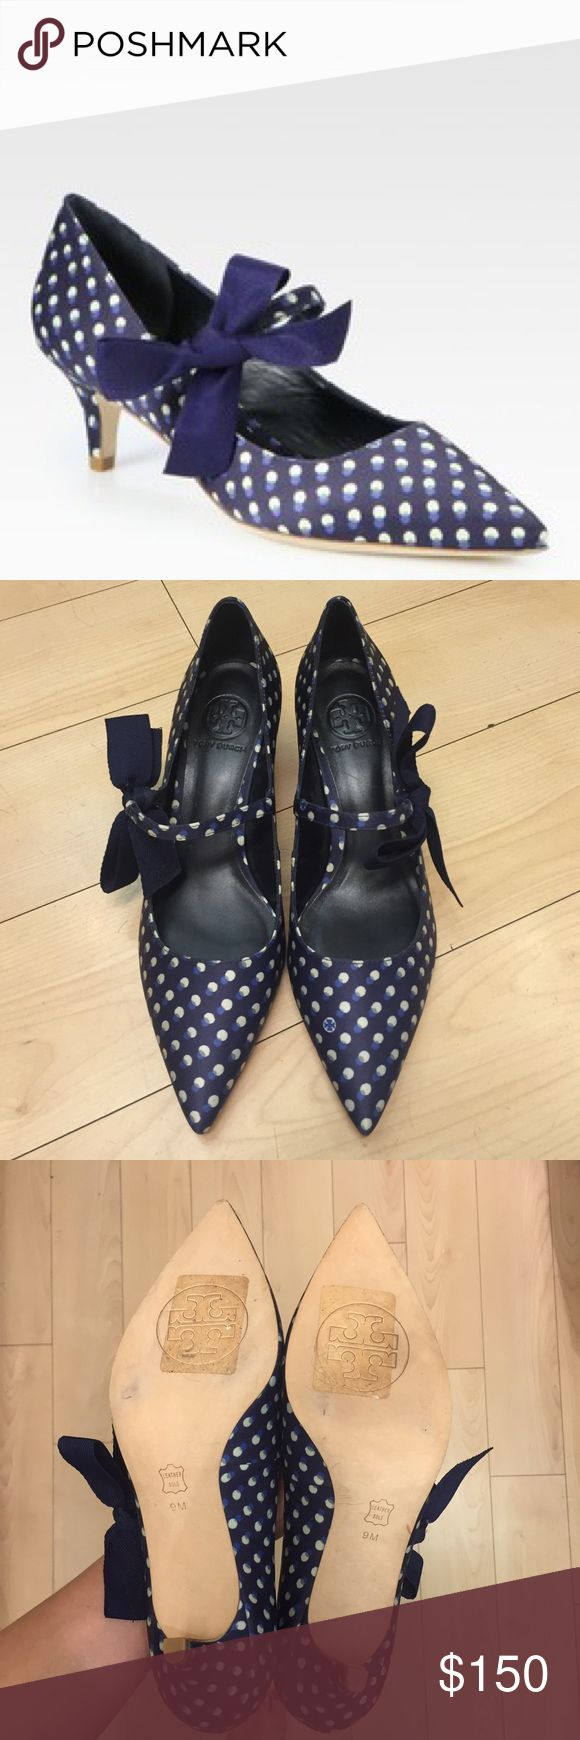 NWOT Tory Burch Beverly Polka Dotted Heels Polka dot satin in a point toe silhouette with an oversized canvas bow and a slight heel. Leather lining and sole. Padded insole. SOLD OUT everywhere online. Brand new in pristine condition. Open to reasonable offers! Tory Burch Shoes Heels